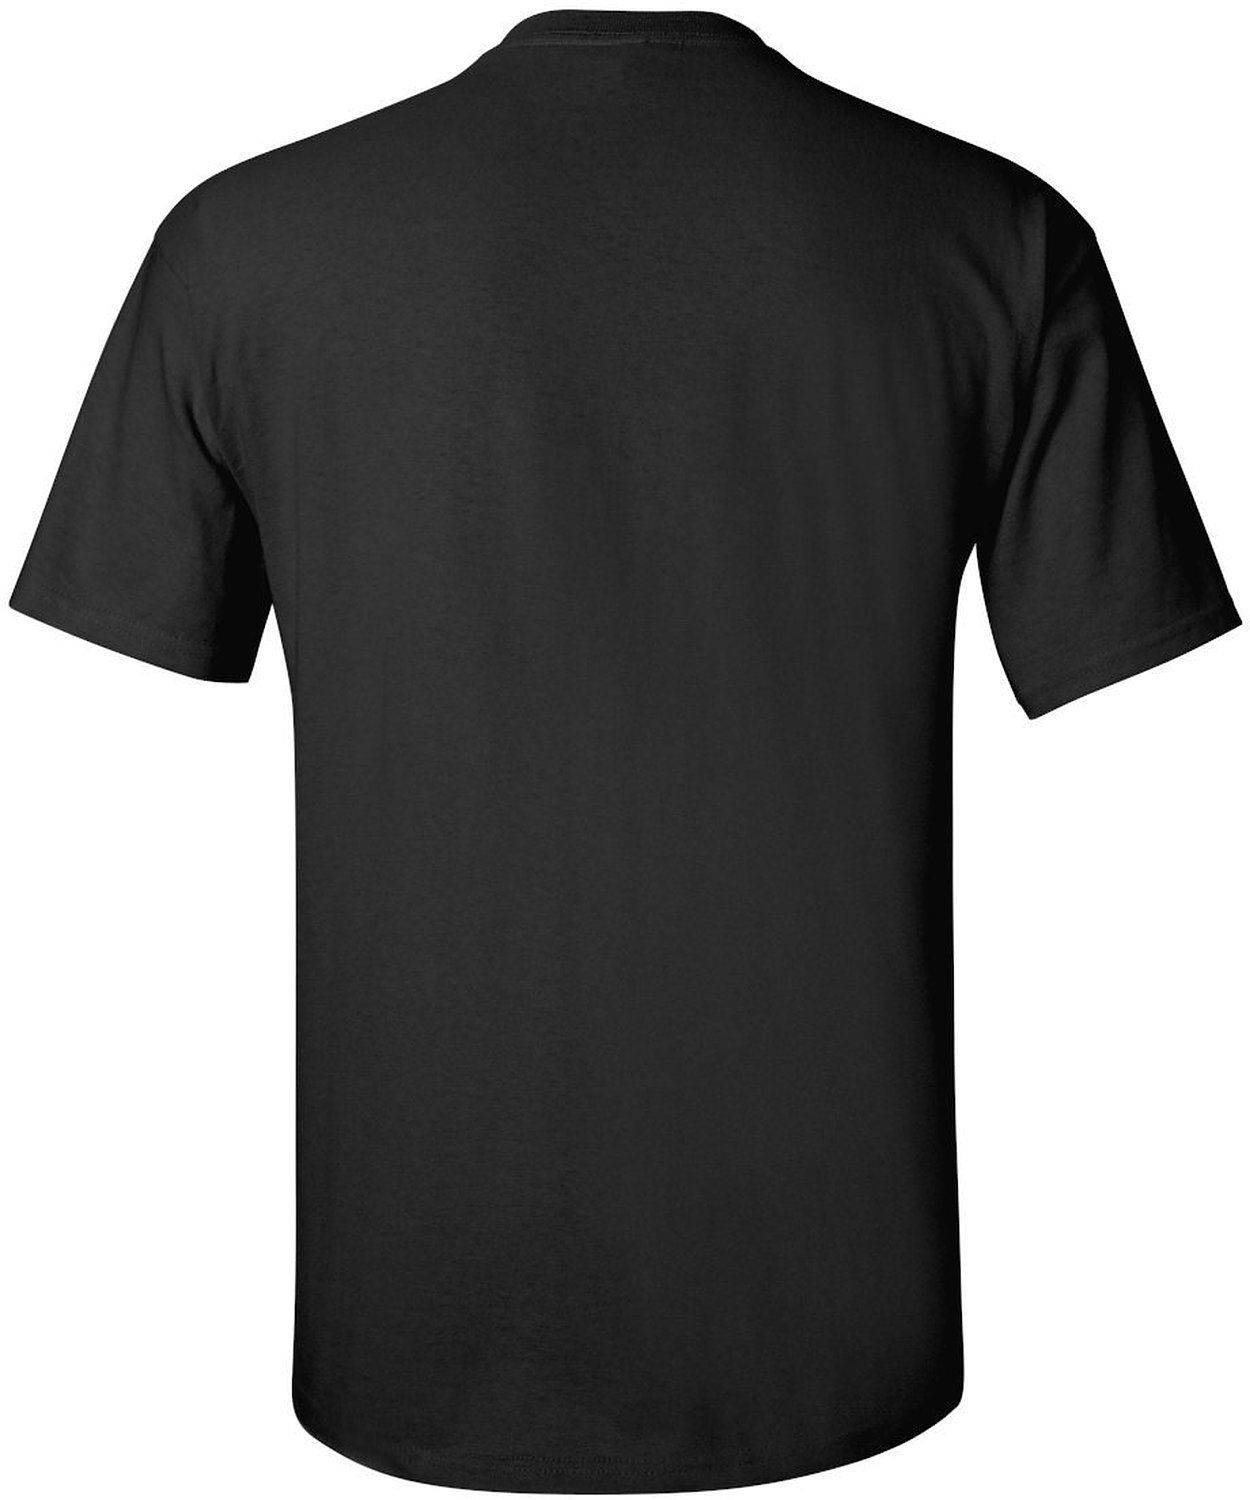 T Shirt Graphics Crew Neck All Seeing Eye Short Sleeve Design T Shirts For Men in T Shirts from Men 39 s Clothing